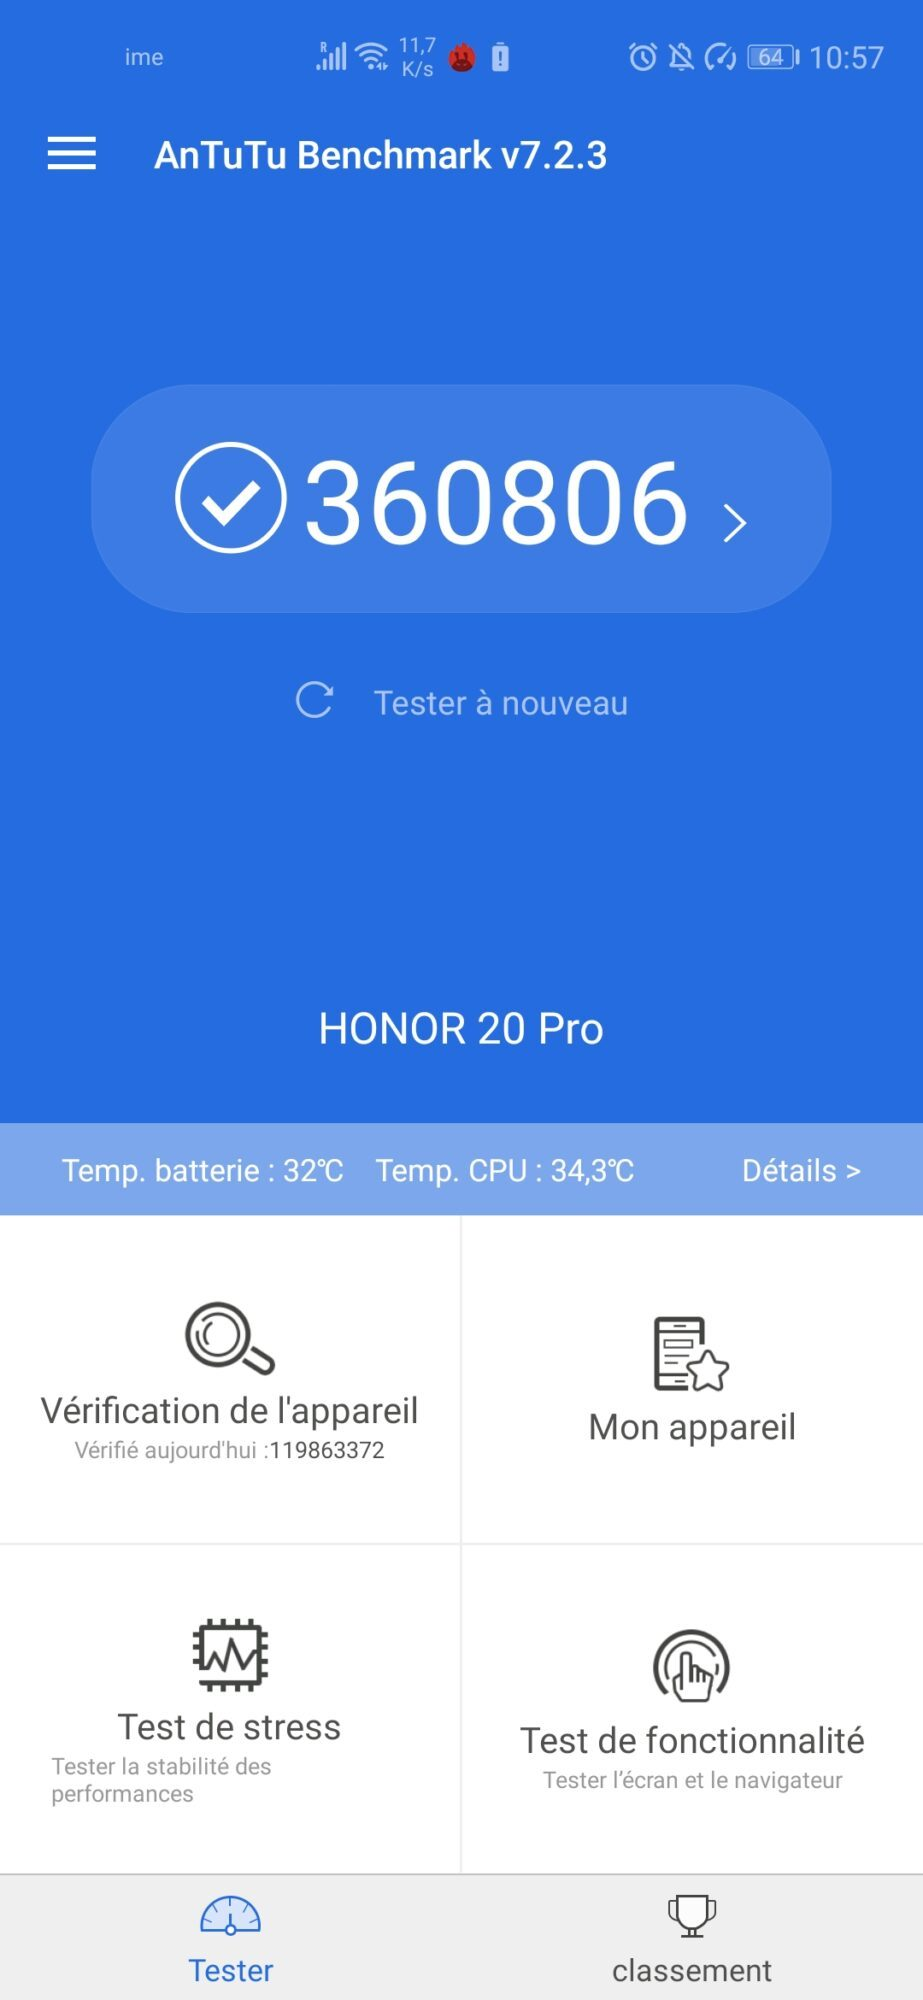 honor 20 pro capteurs 48 MP Android Magic UI performances Kirin 980 Ai Antutu indice score